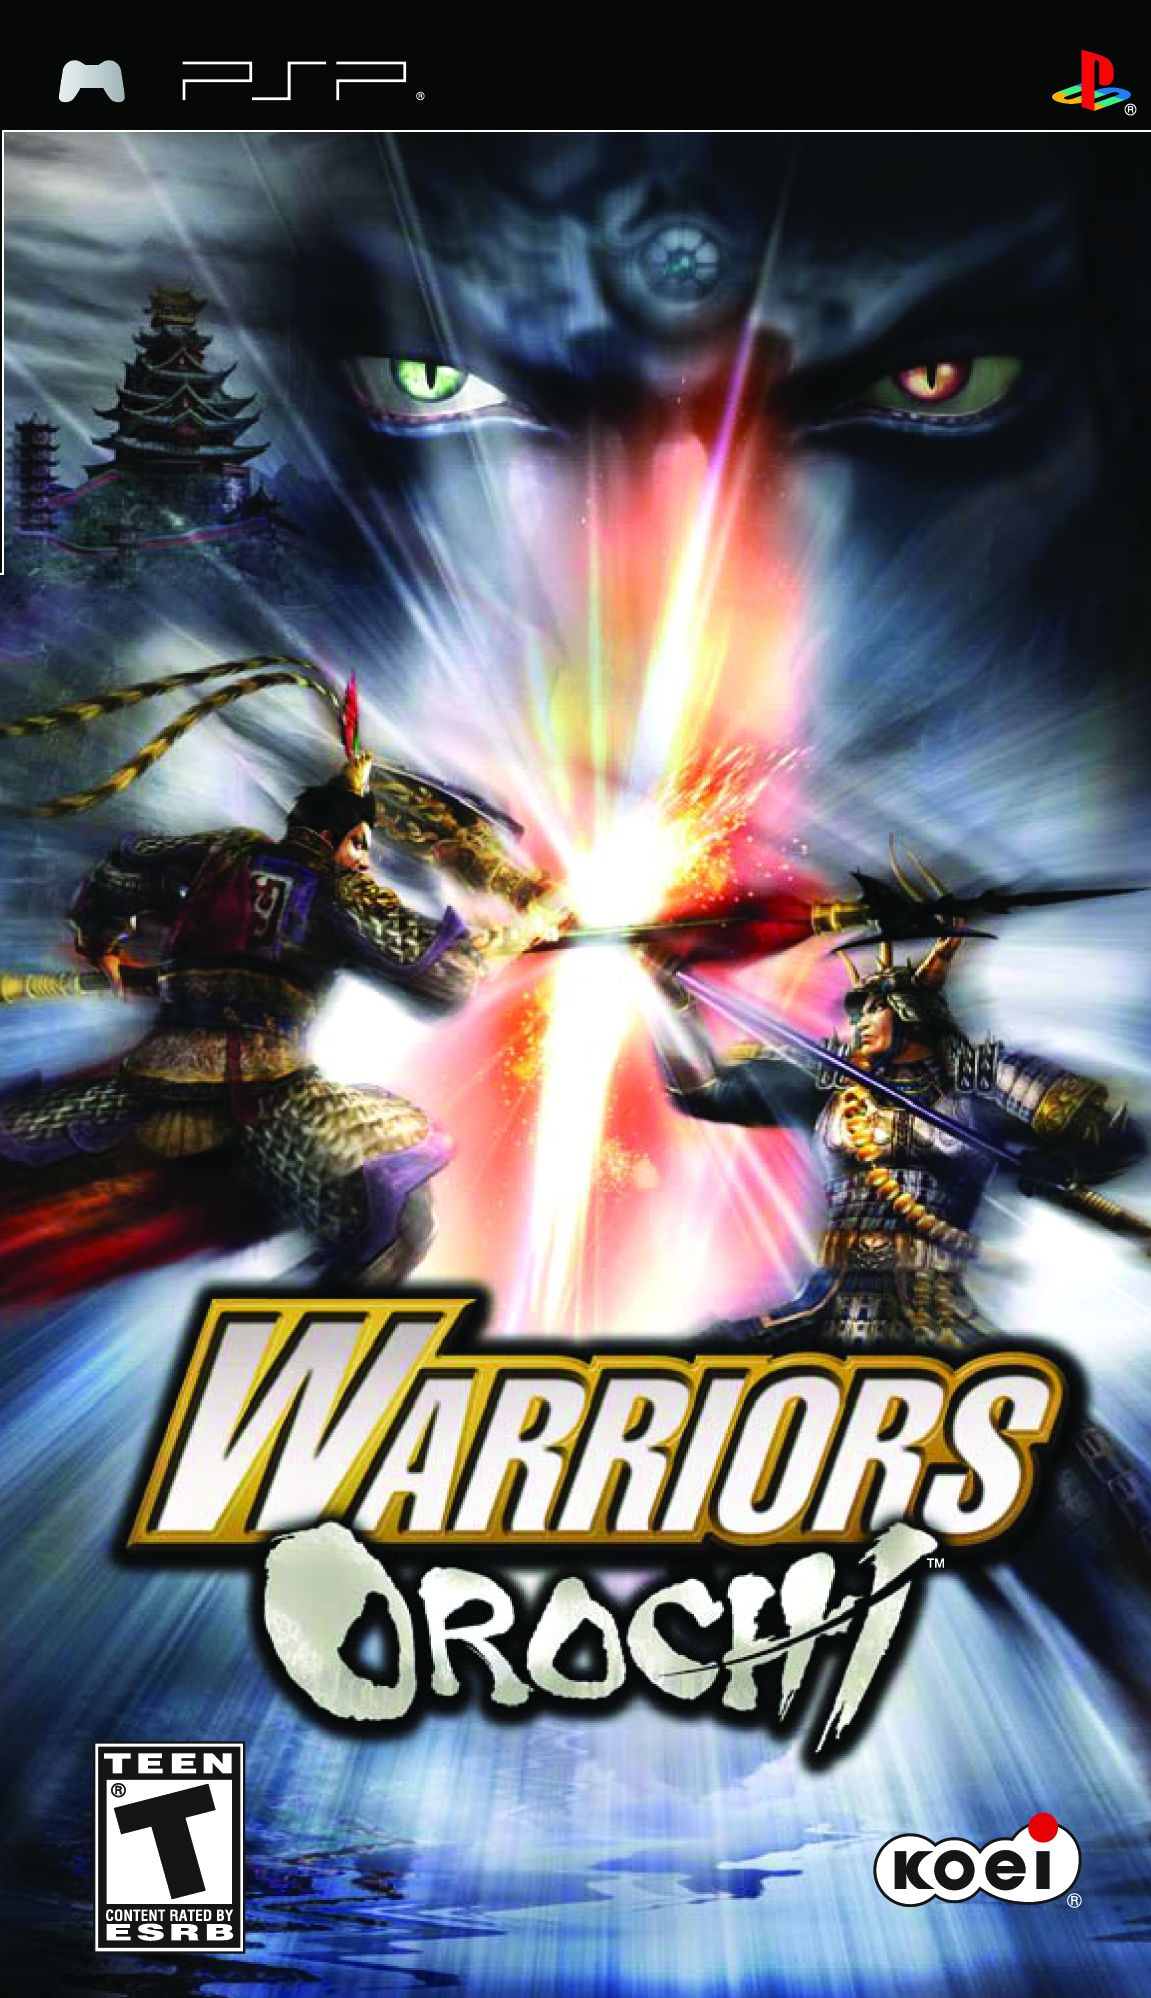 Warriors Orochi Review IGN